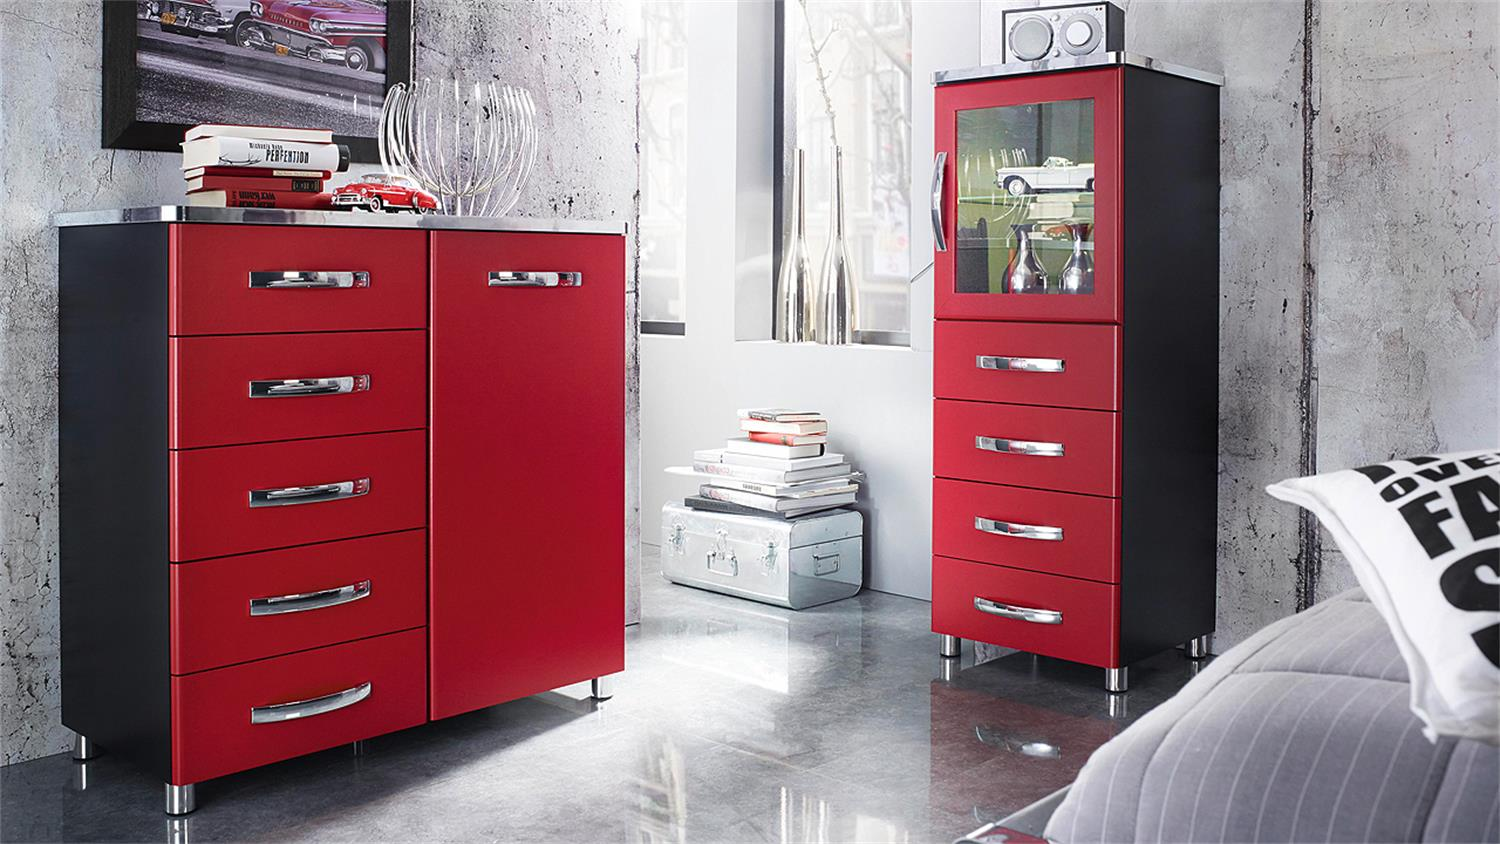 kommode rot top hemnes kommode rot in kirchberg i wald with kommode rot bunte mbel antike. Black Bedroom Furniture Sets. Home Design Ideas